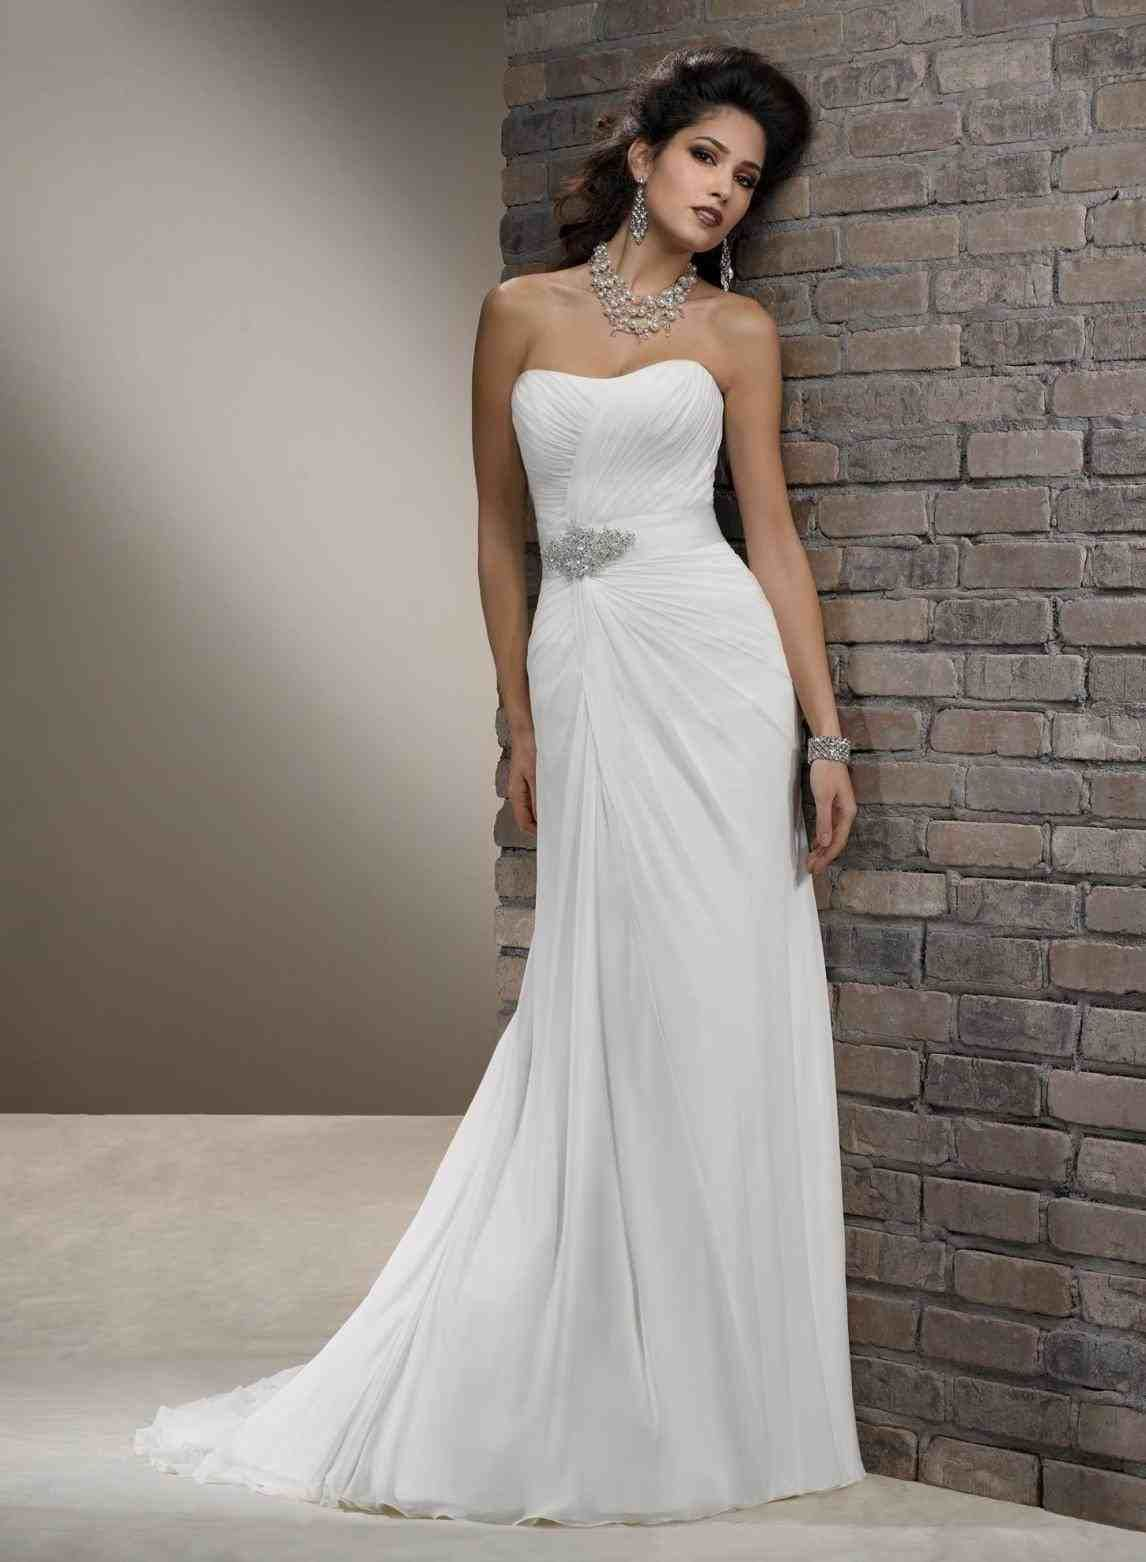 Simple wedding dresses cheap  TOP  New post simple wedding dresses cheap visit wedbridalte